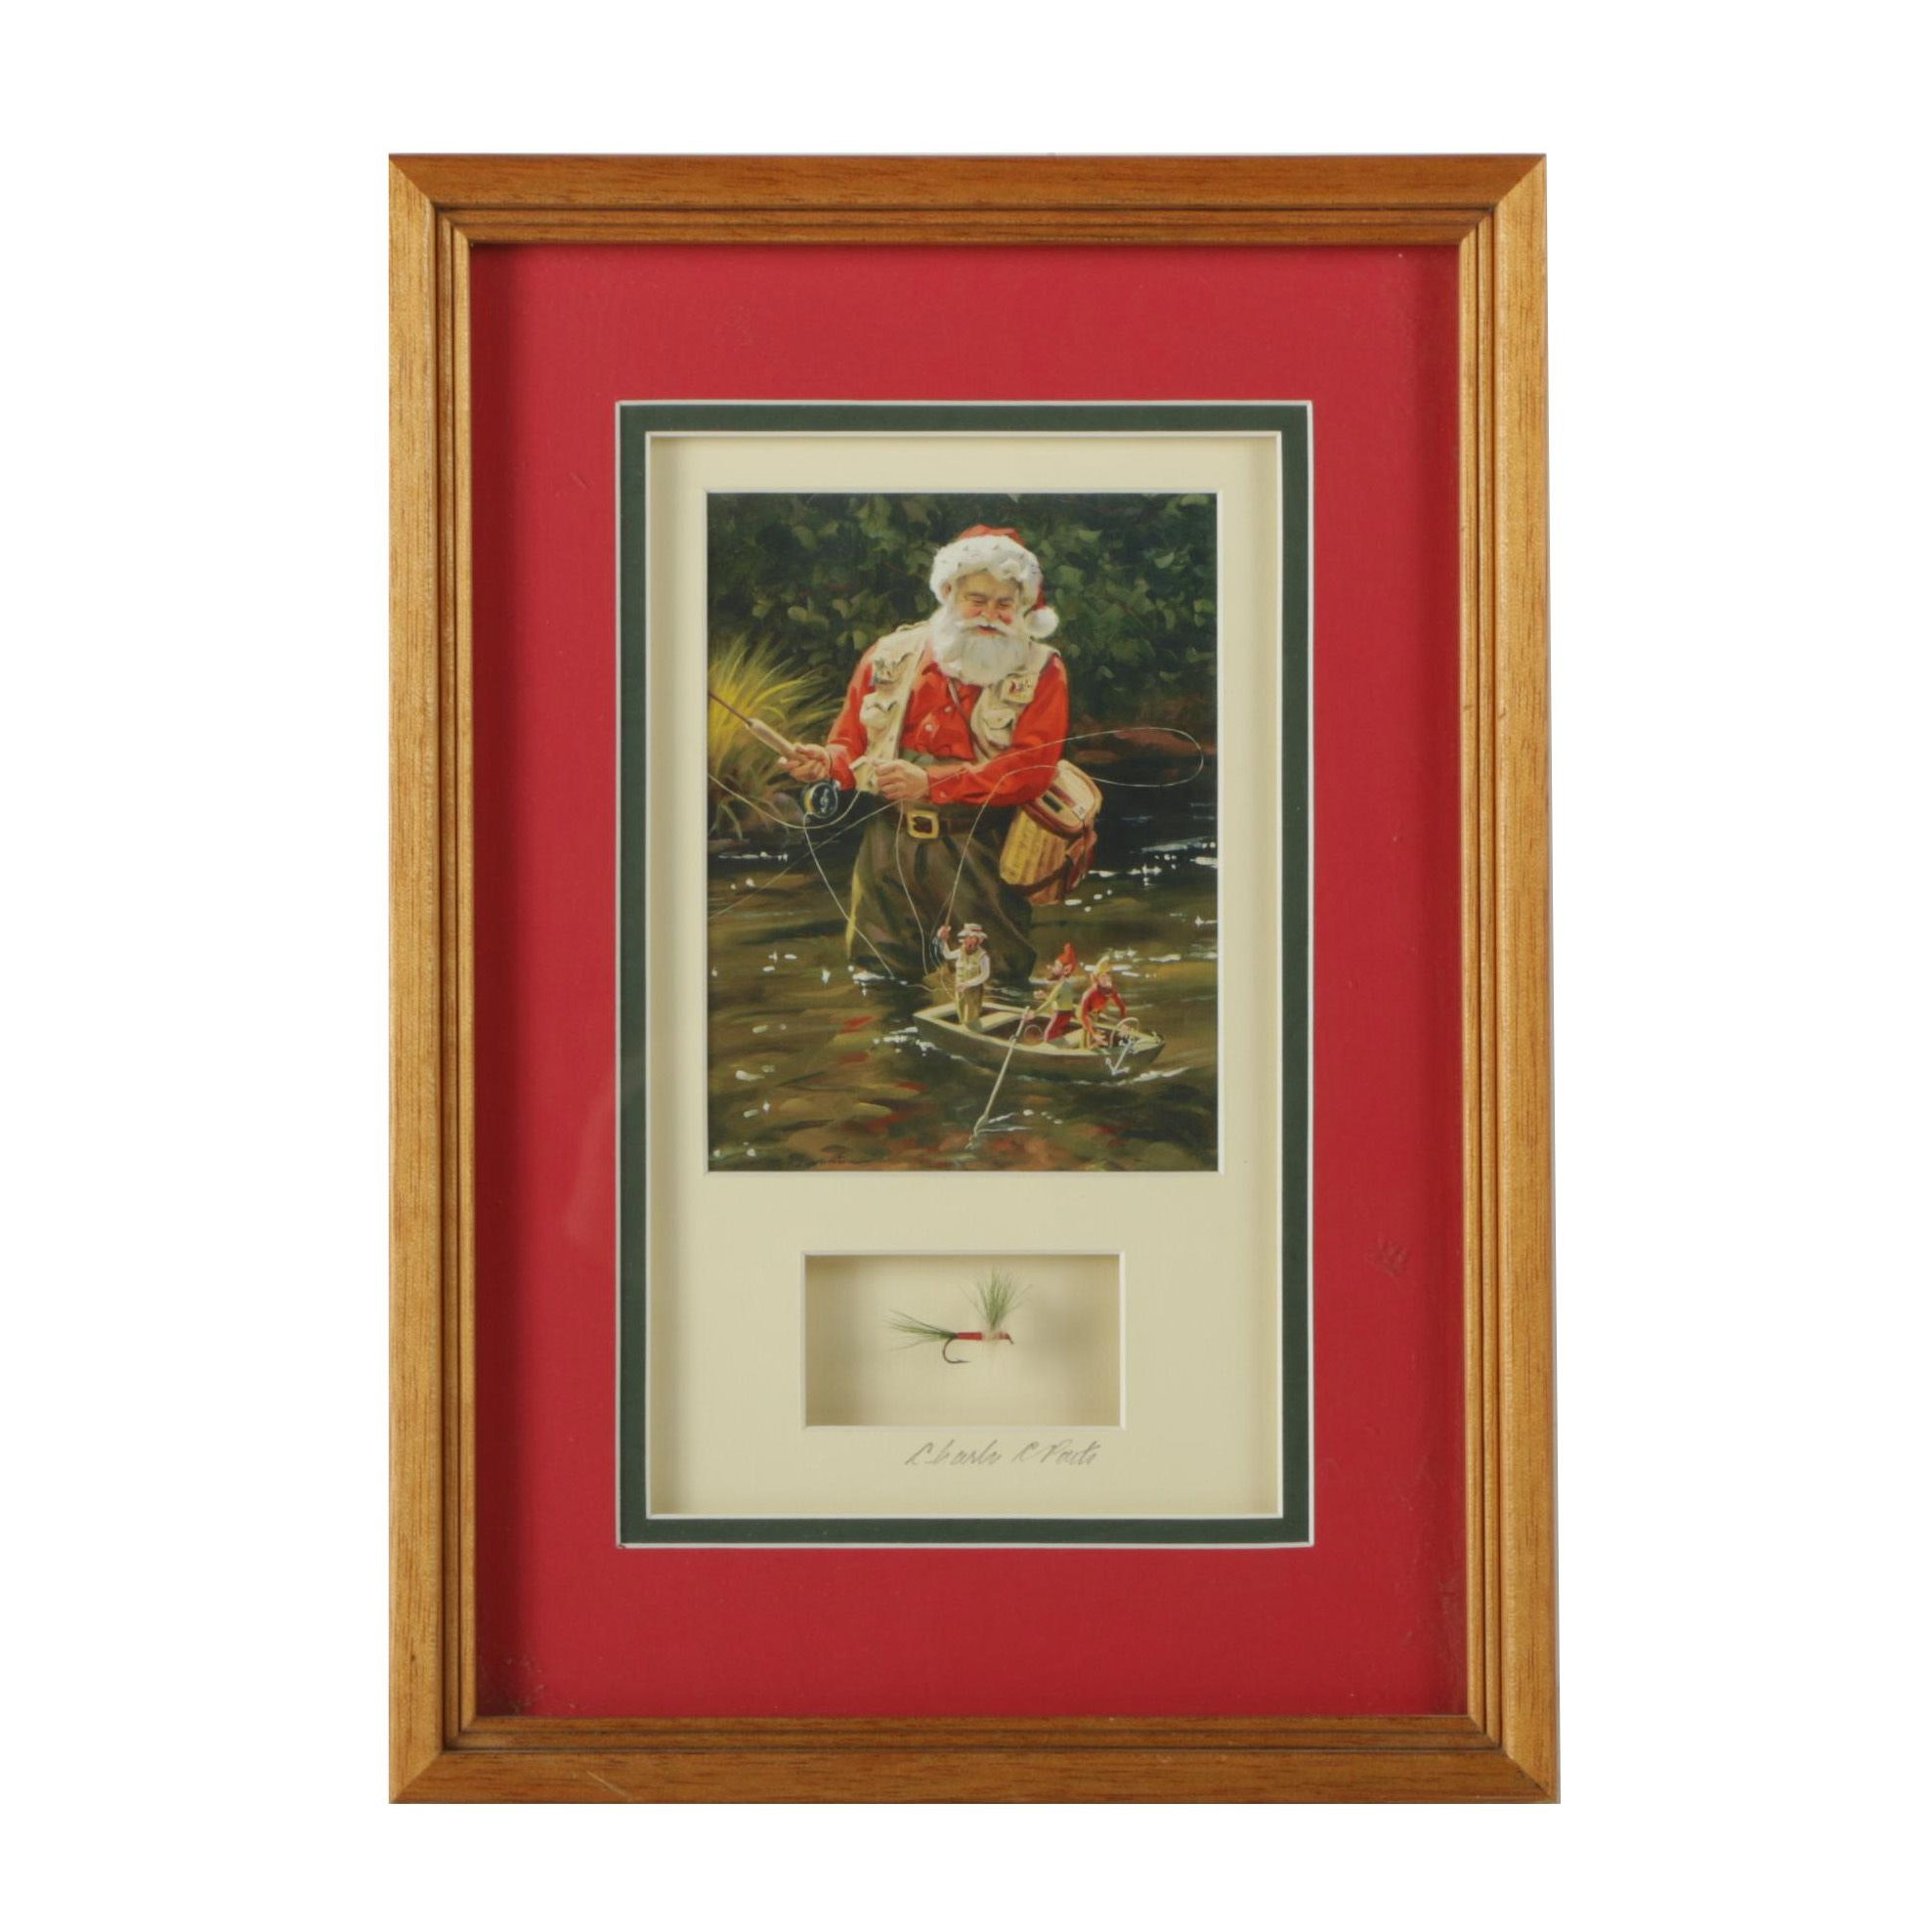 Christmas Wall Hanging Featuring a Reproduction Print After Tom Browning